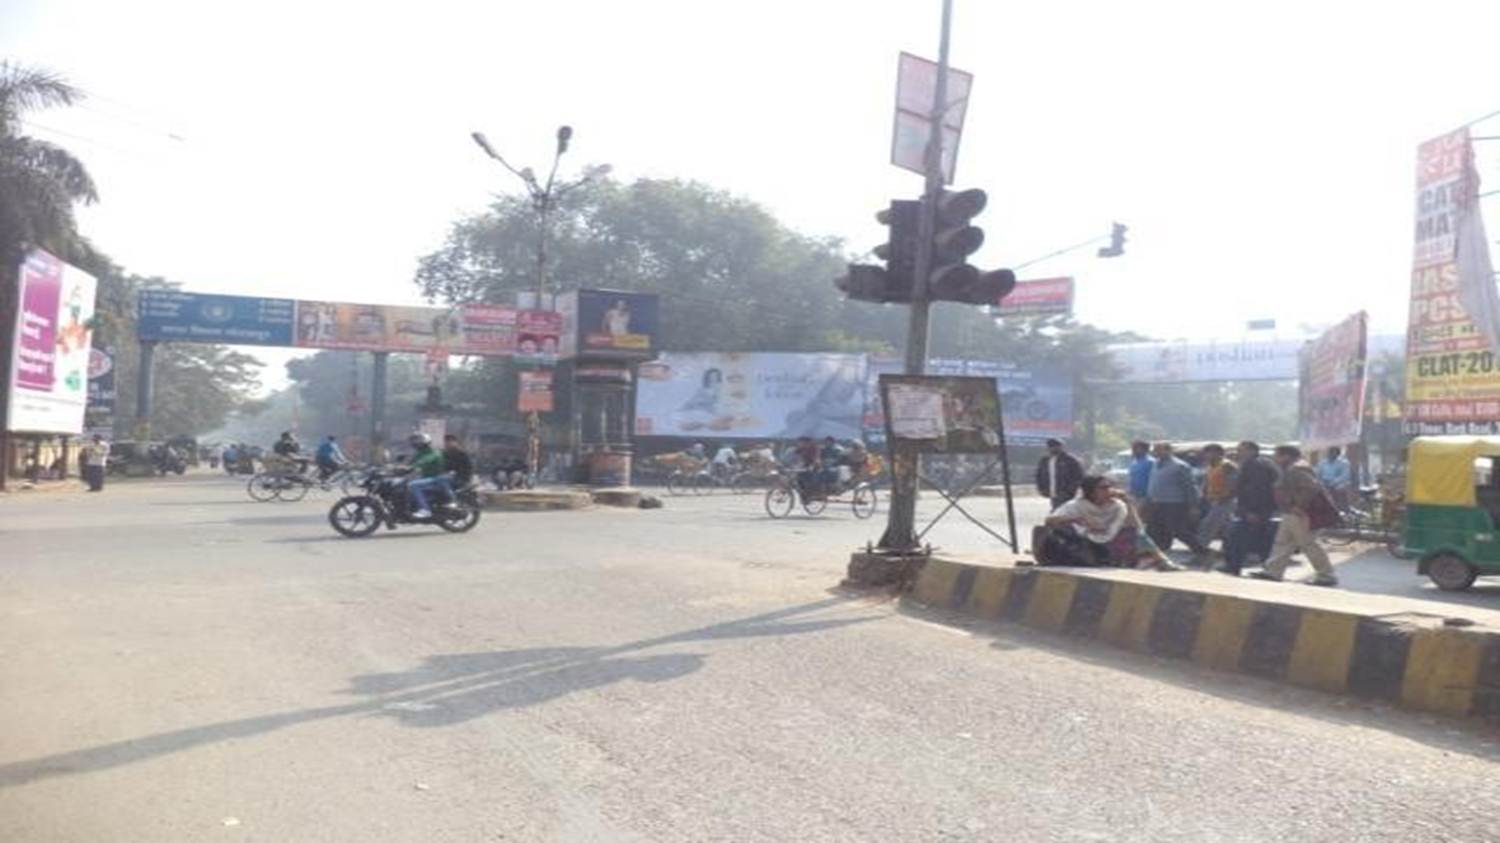 University Crossing, Gorakhpur